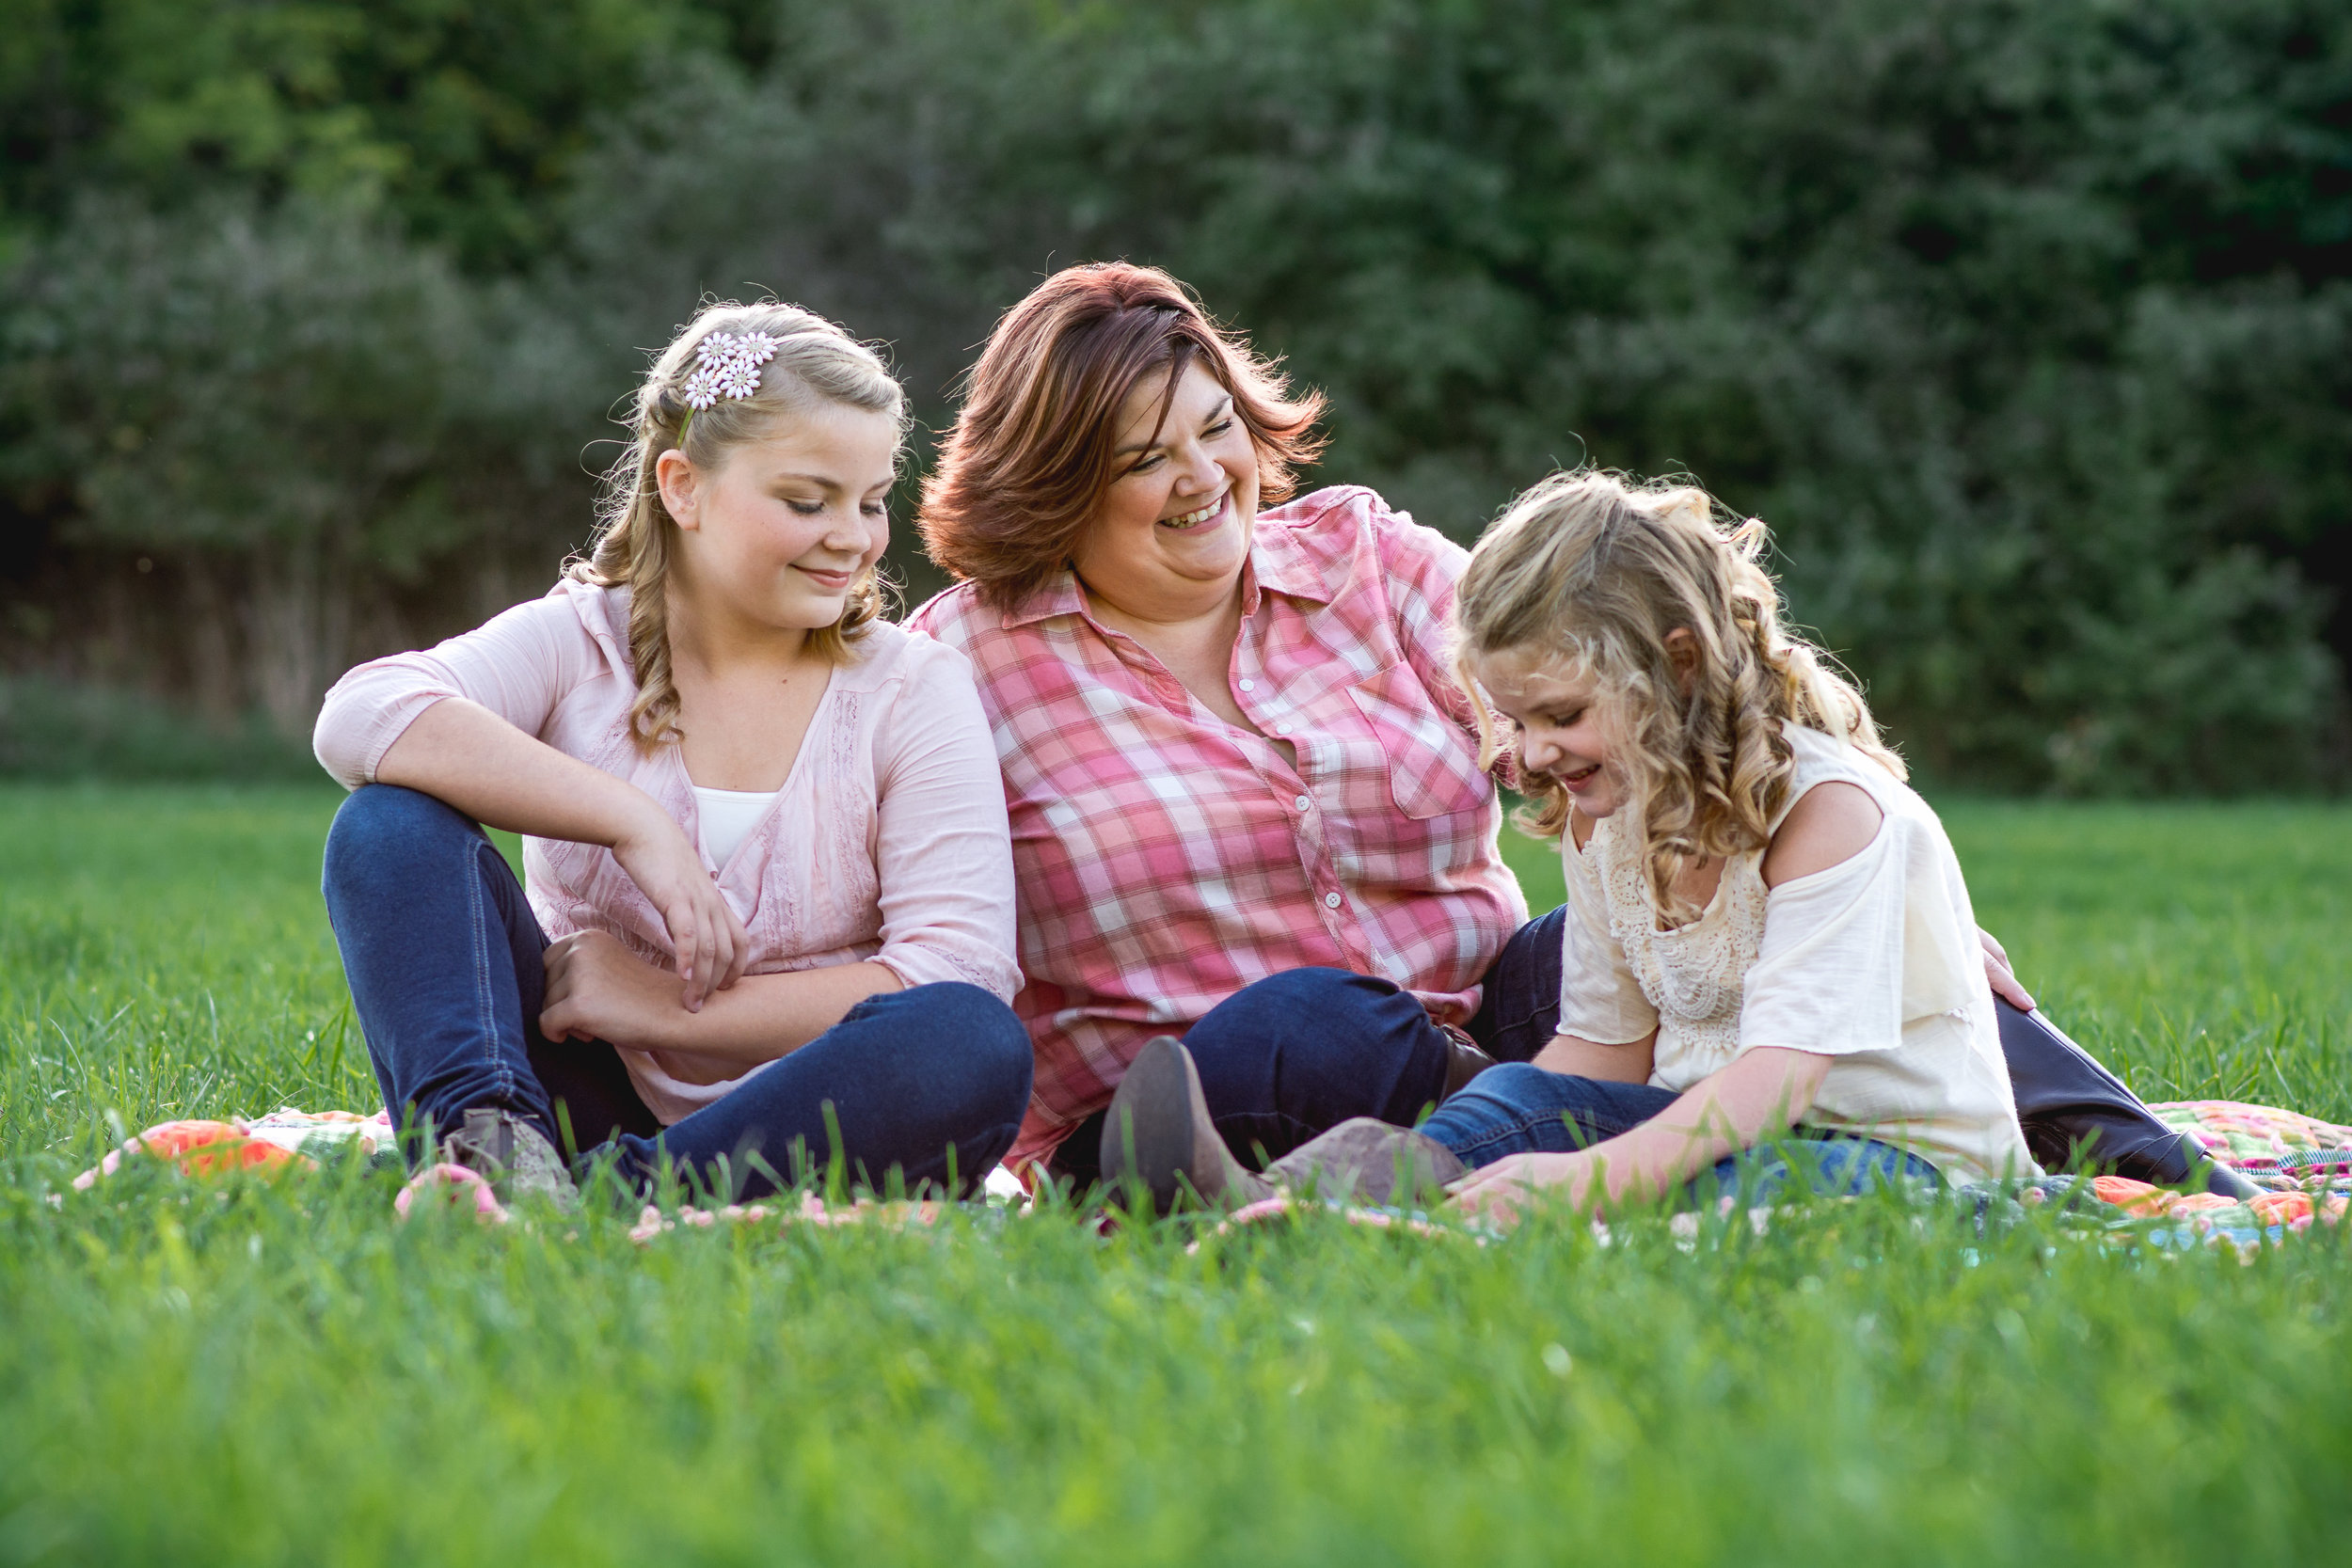 Springfield Ohio Lifestyle Family Photographer | Amanda Noel Photography | sunset mother daughter session